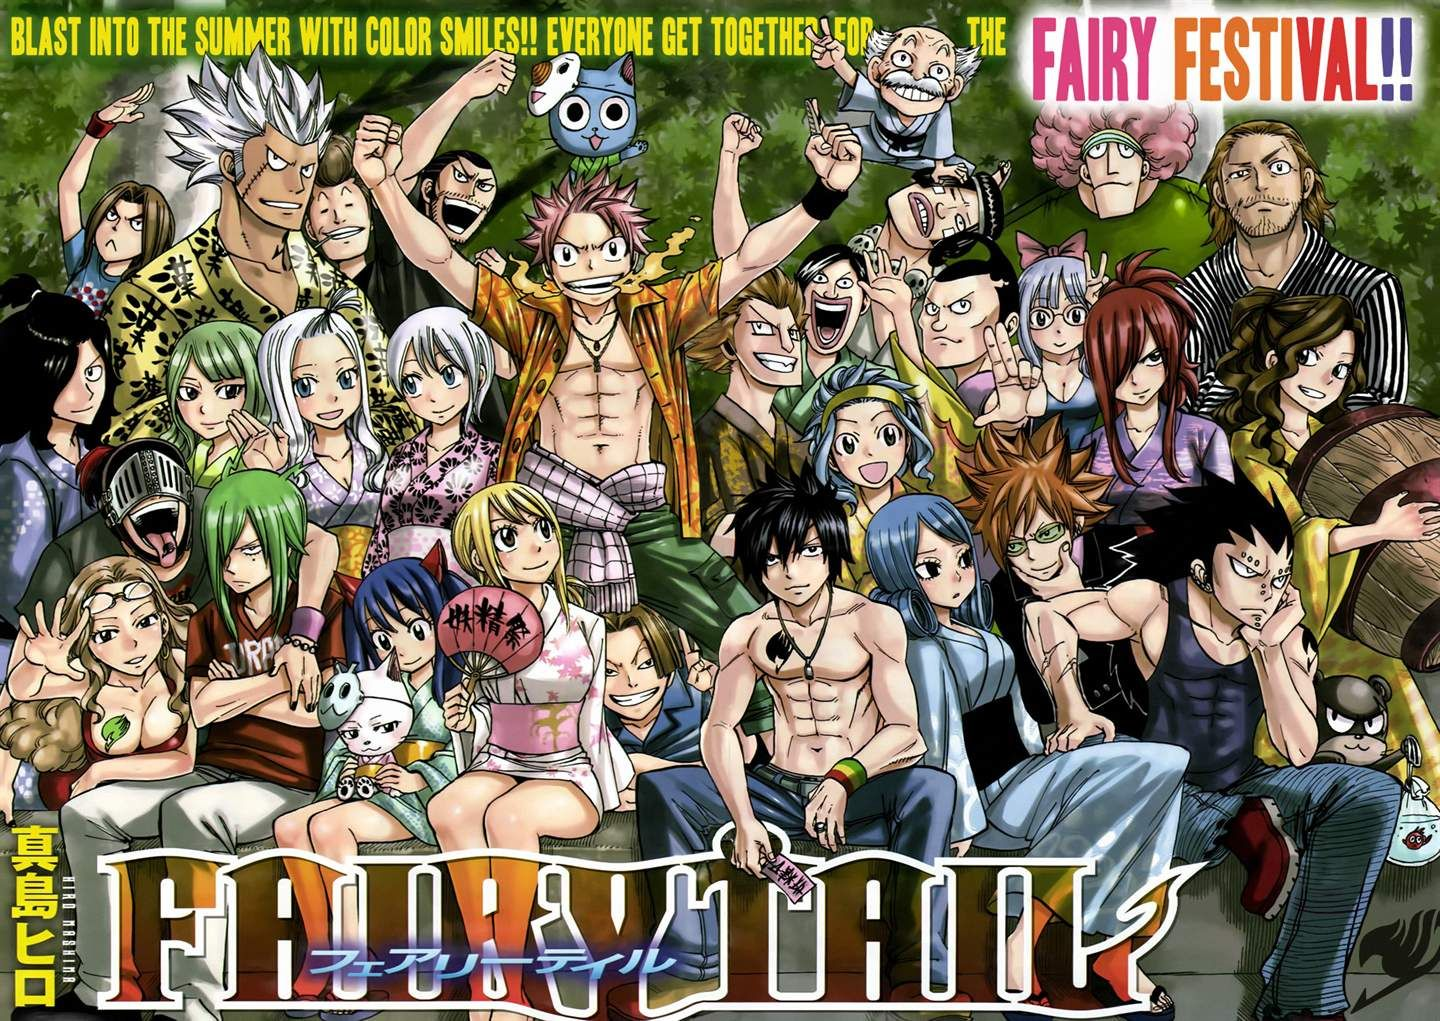 Based on a japanese manga series written and illustrated by hiro mashima